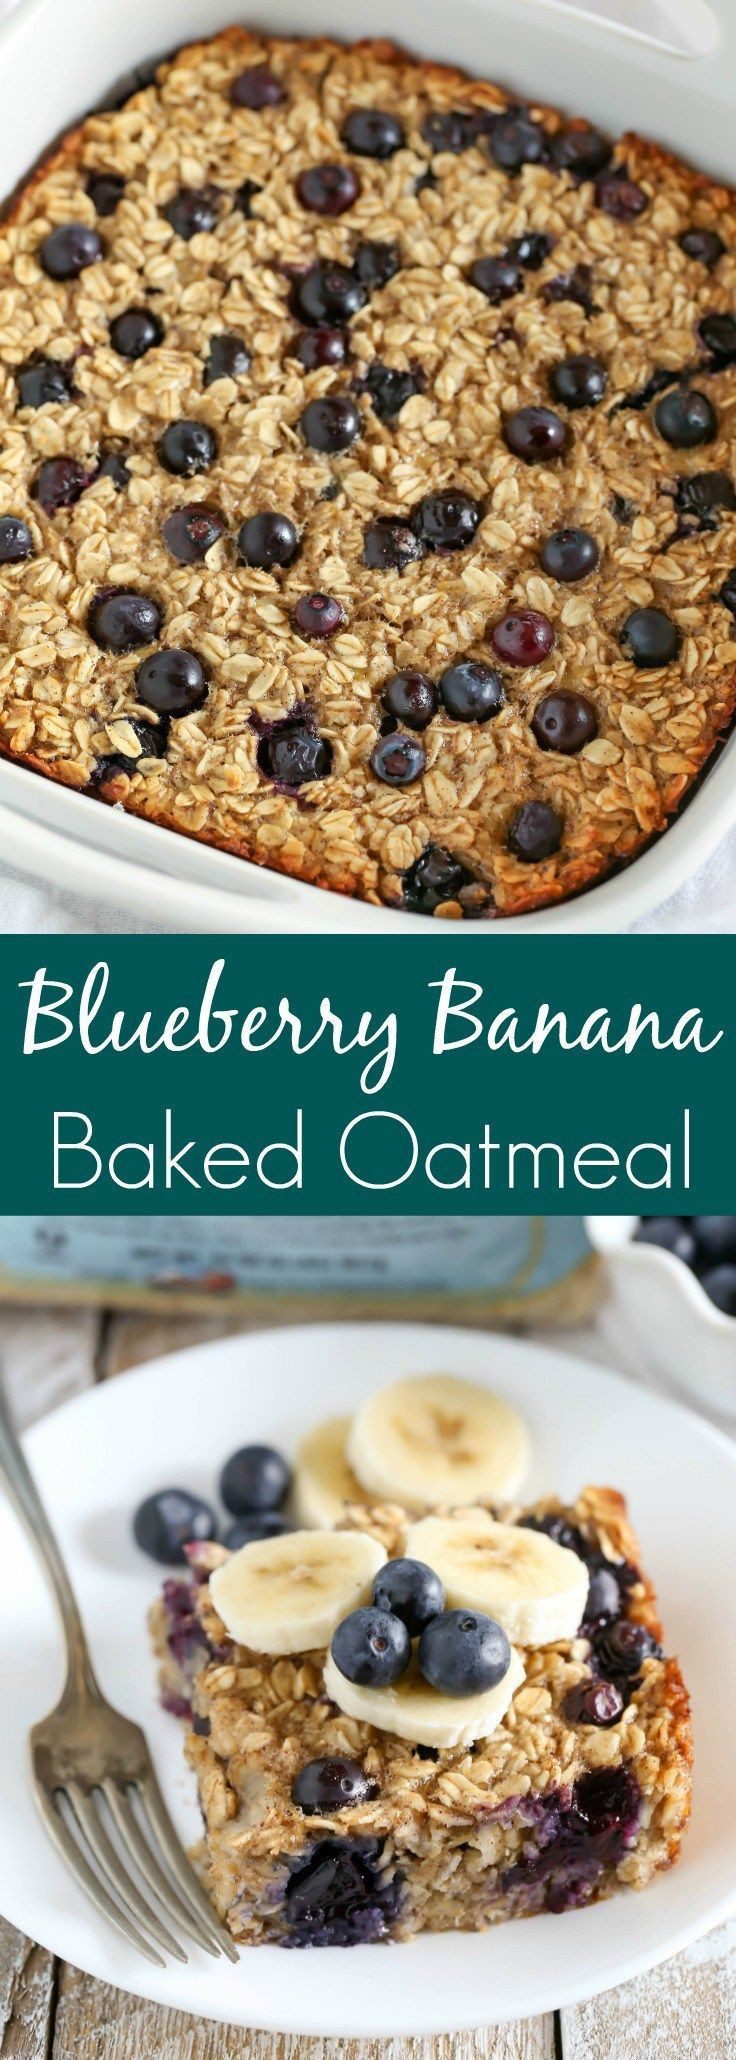 Healthy Oatmeal Ideas For Breakfast  Best 25 Healthy breakfasts ideas on Pinterest